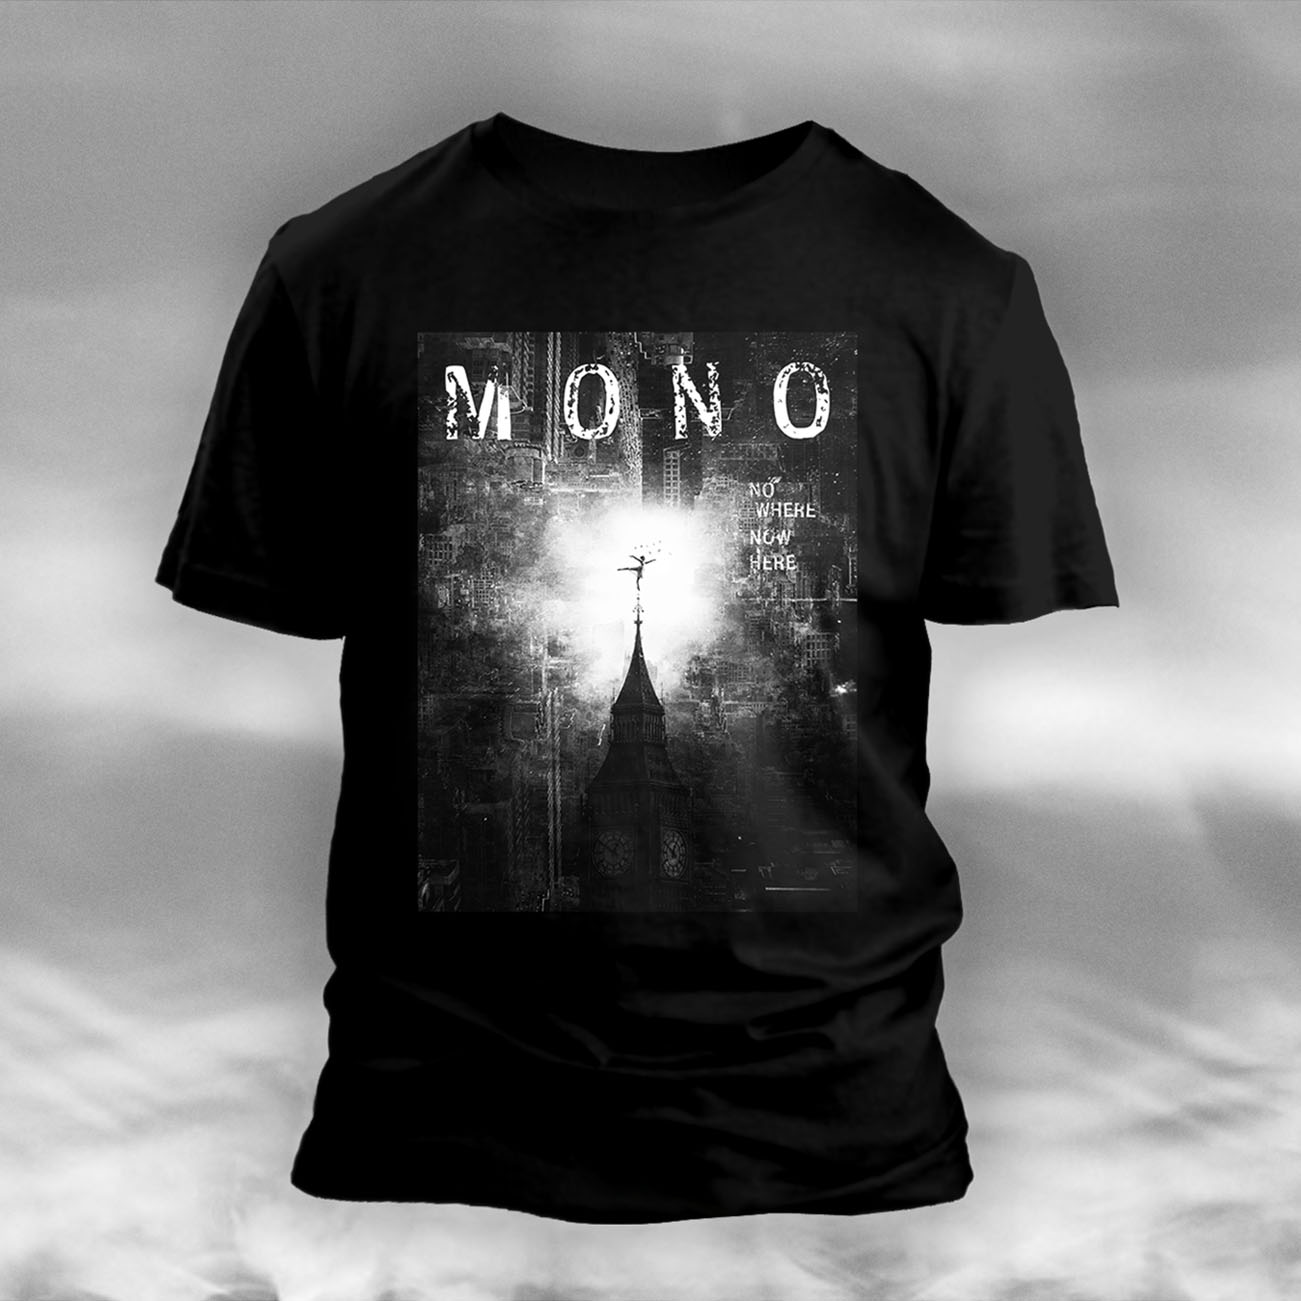 MONO - 'Nowhere Now Here' T-Shirt - MONO